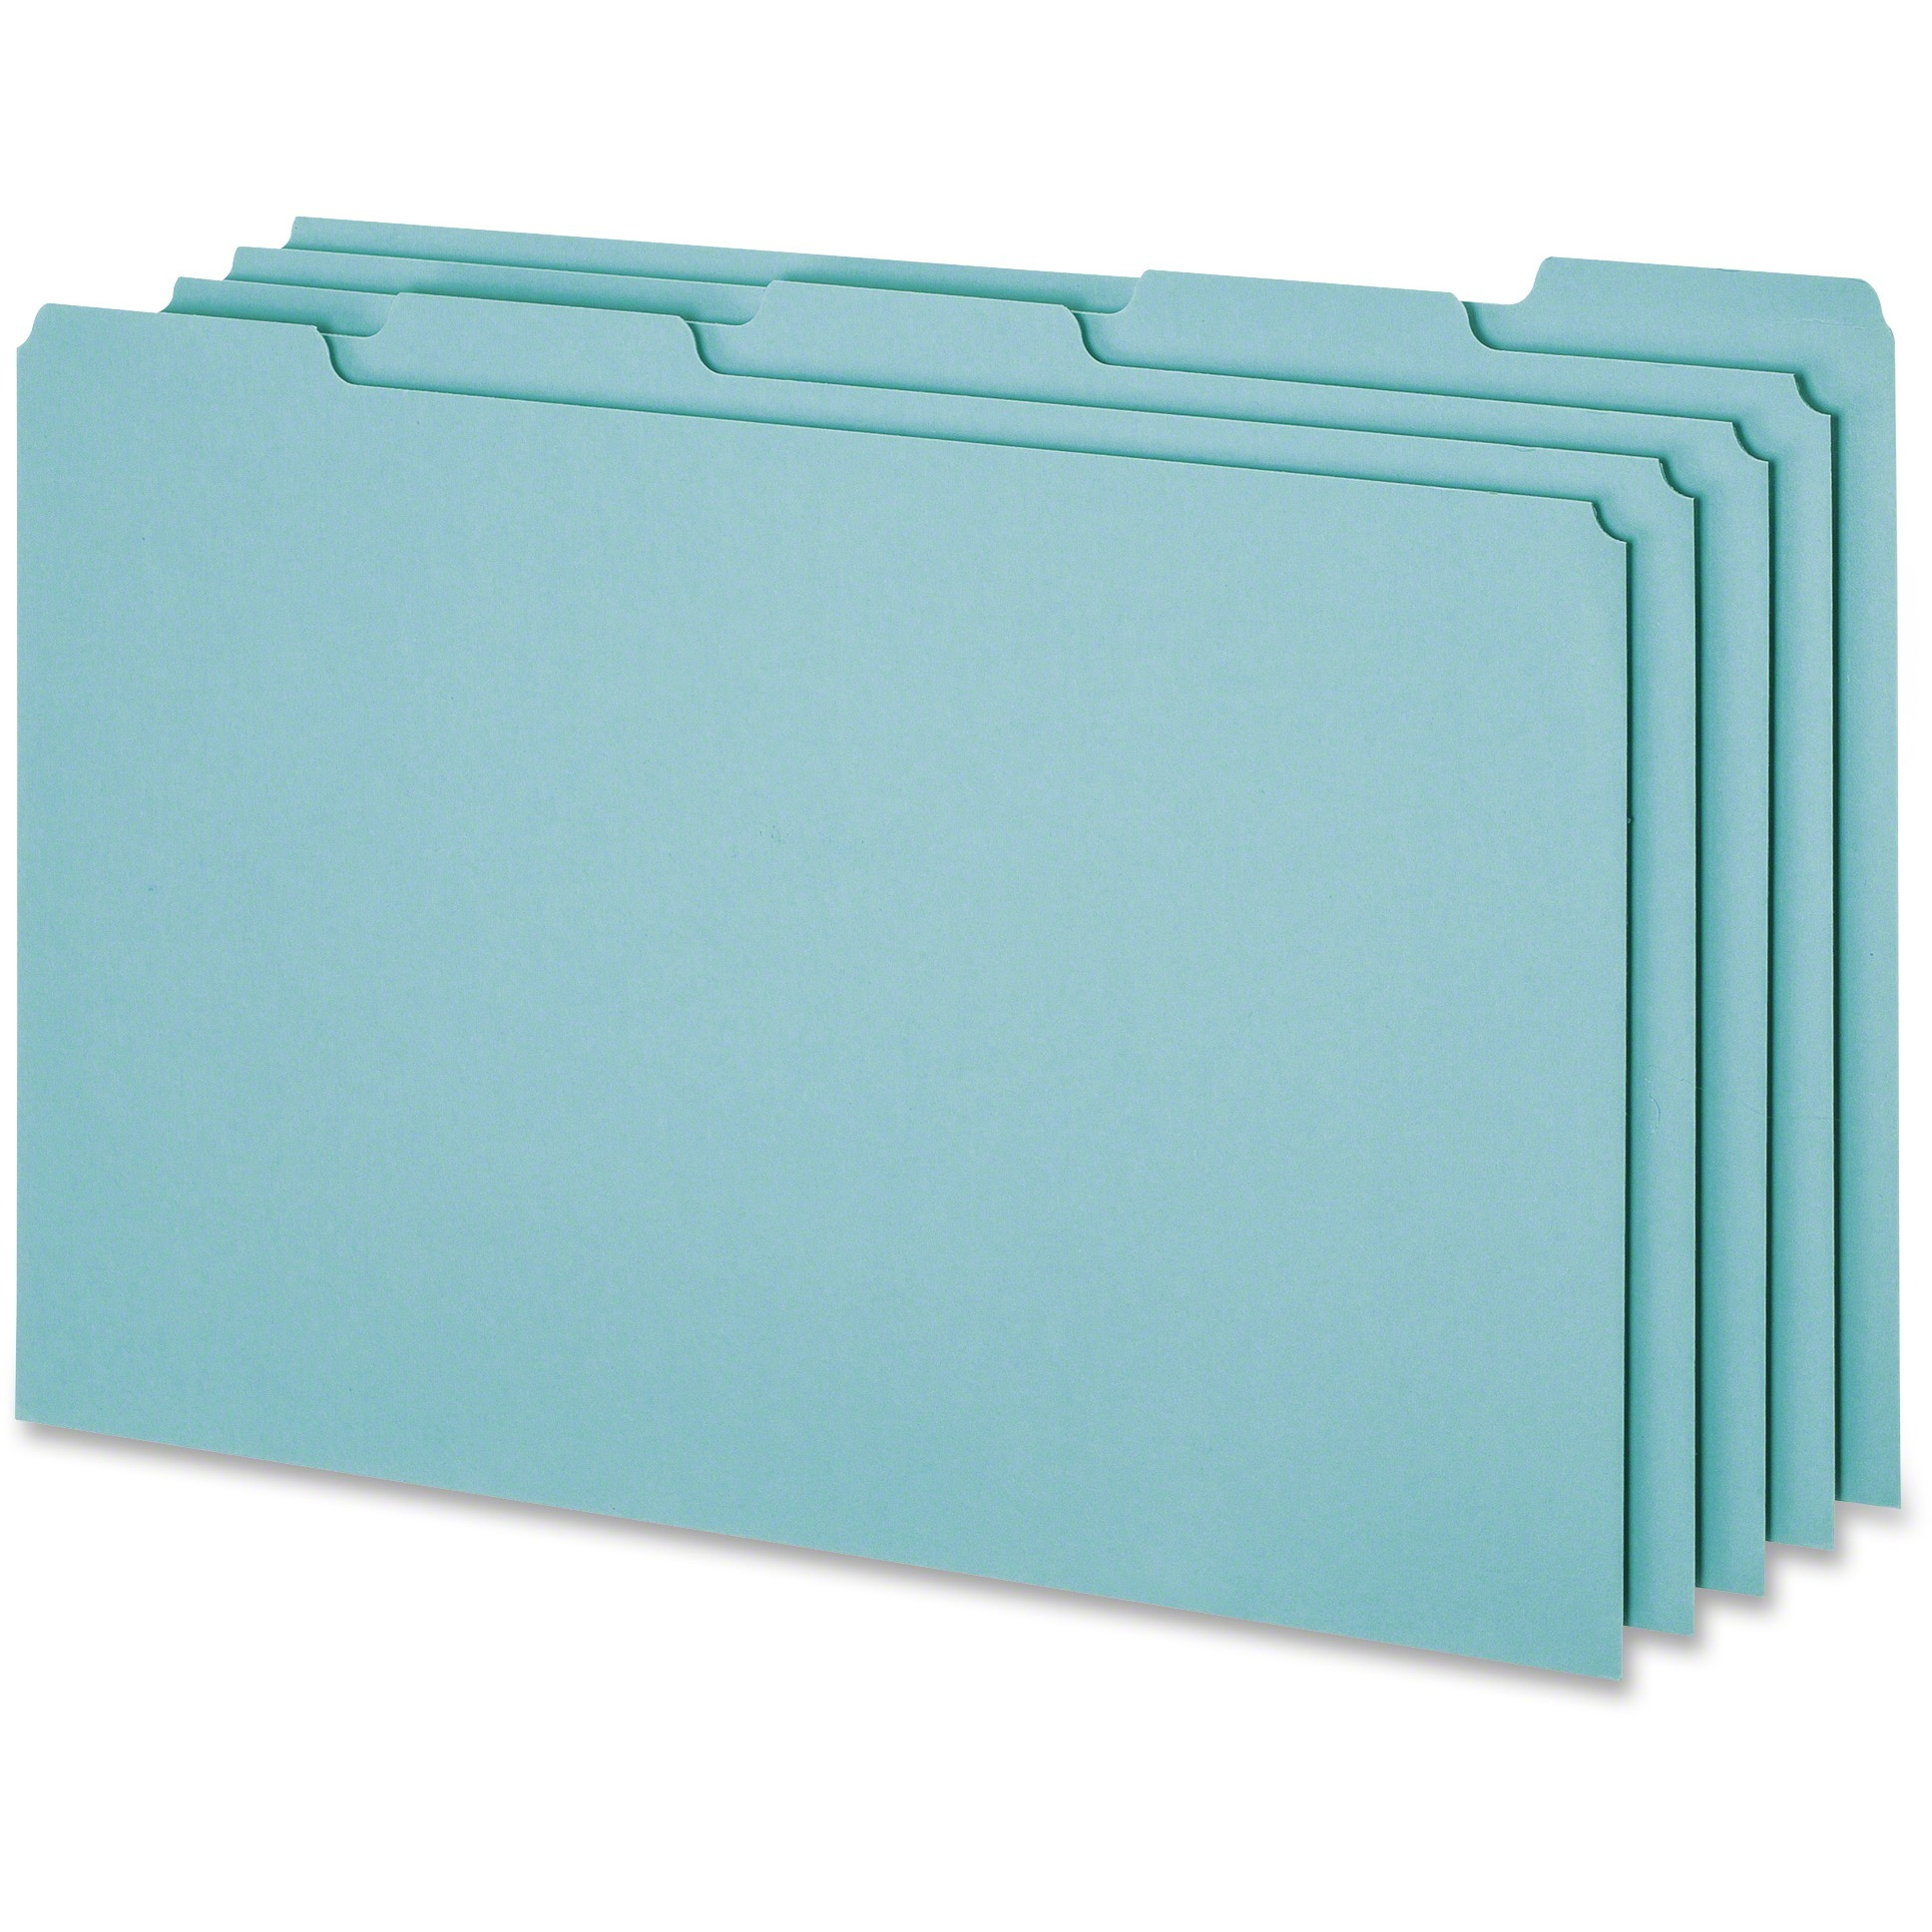 Pendaflex, PFXPN305, 1 5-cut Blank Tab Legal Size File Guides, 50   Box by TOPS Products